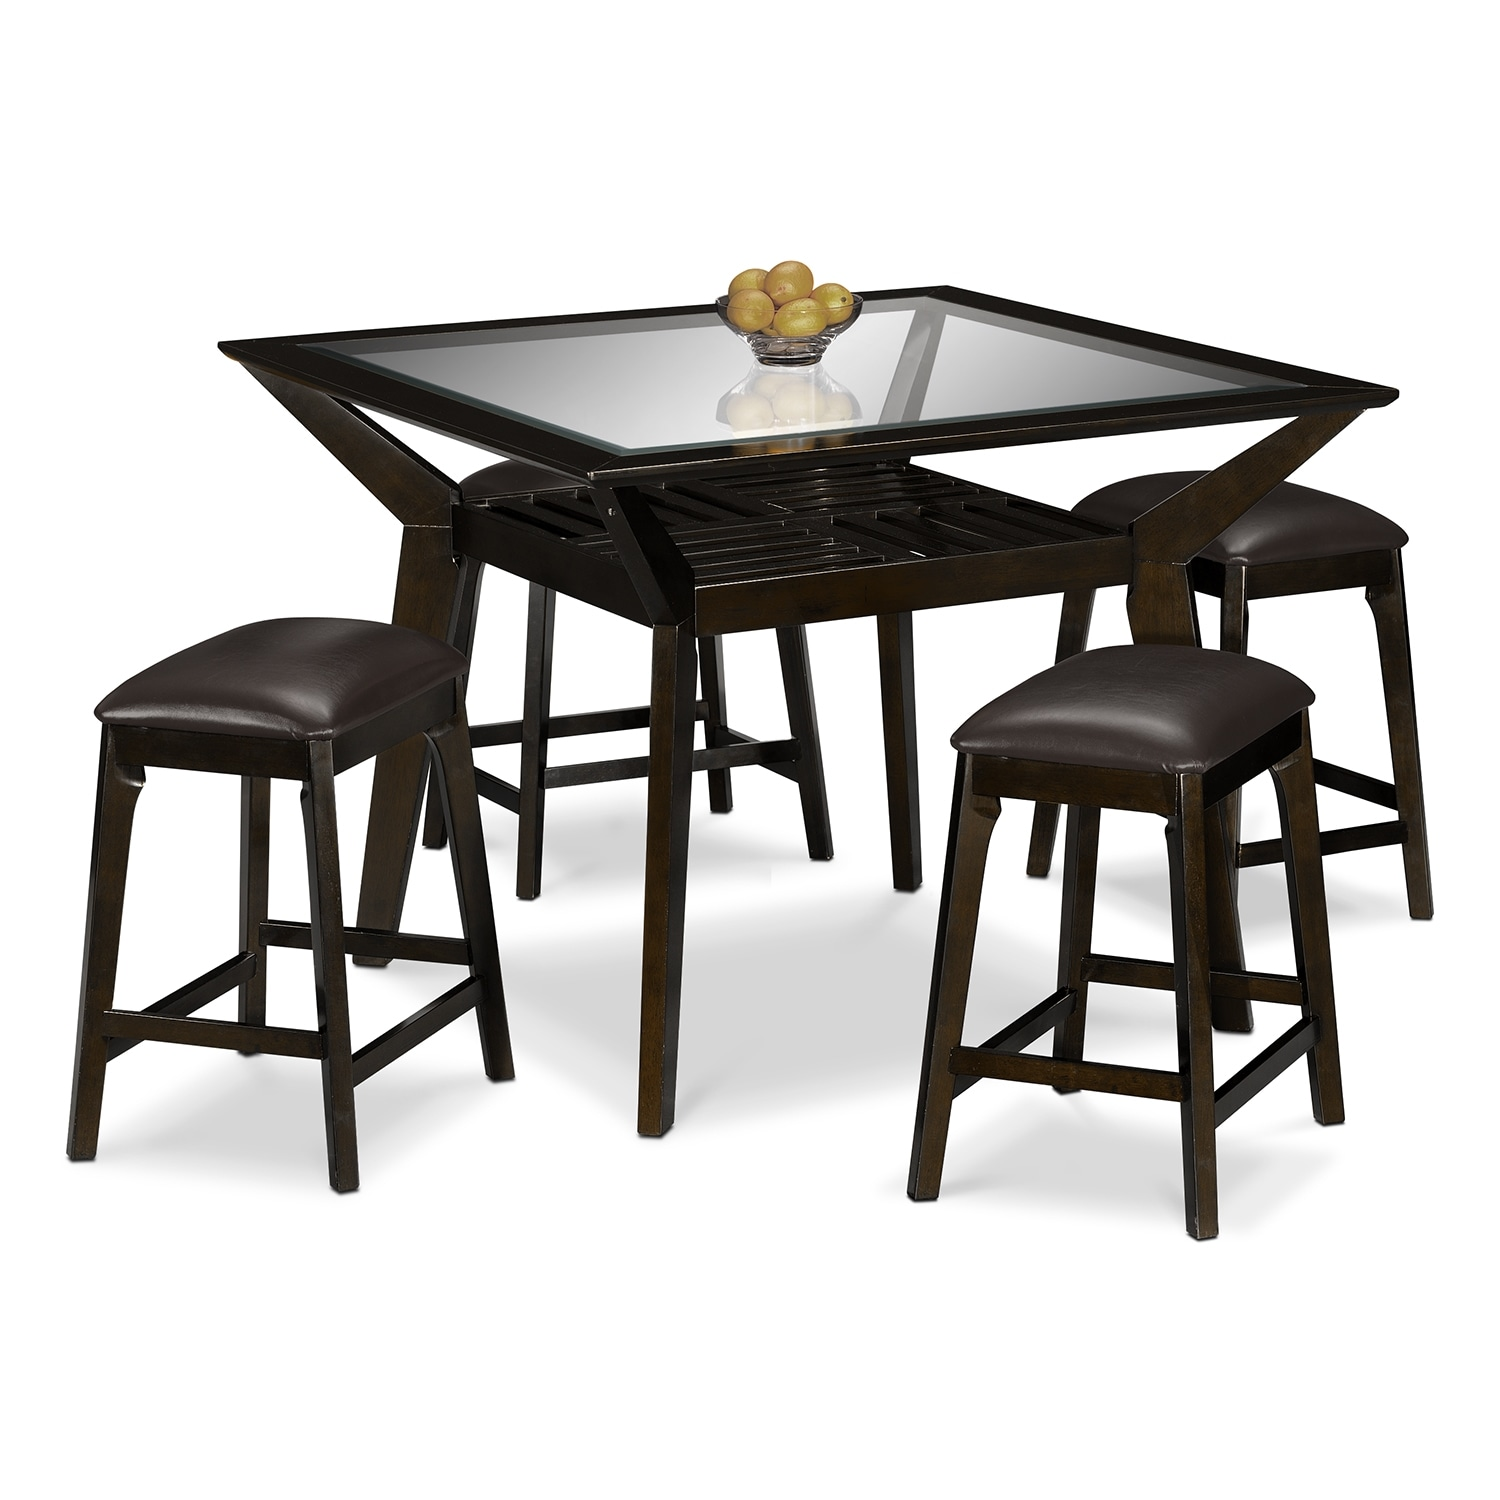 [Mystic 5 Pc. Counter-Height Dinette w/ 4 Backless Stools]